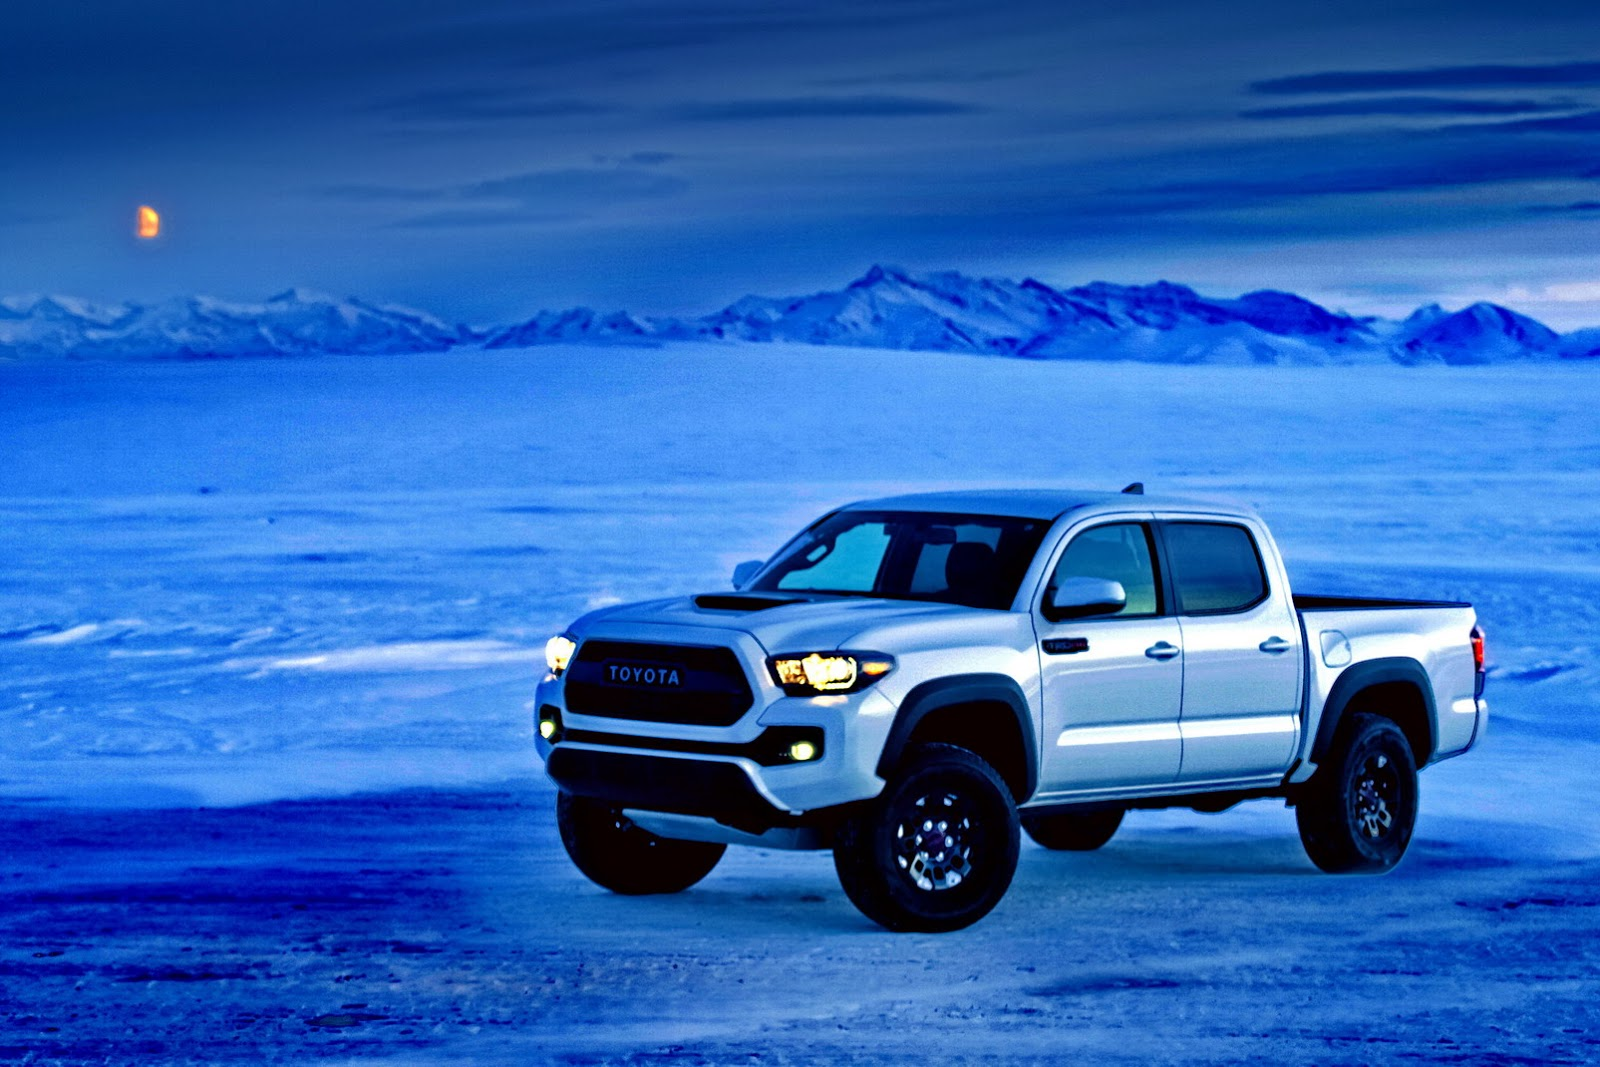 2017 Toyota Tacoma TRD Pro Is a Small but Extreme Off-Road ...